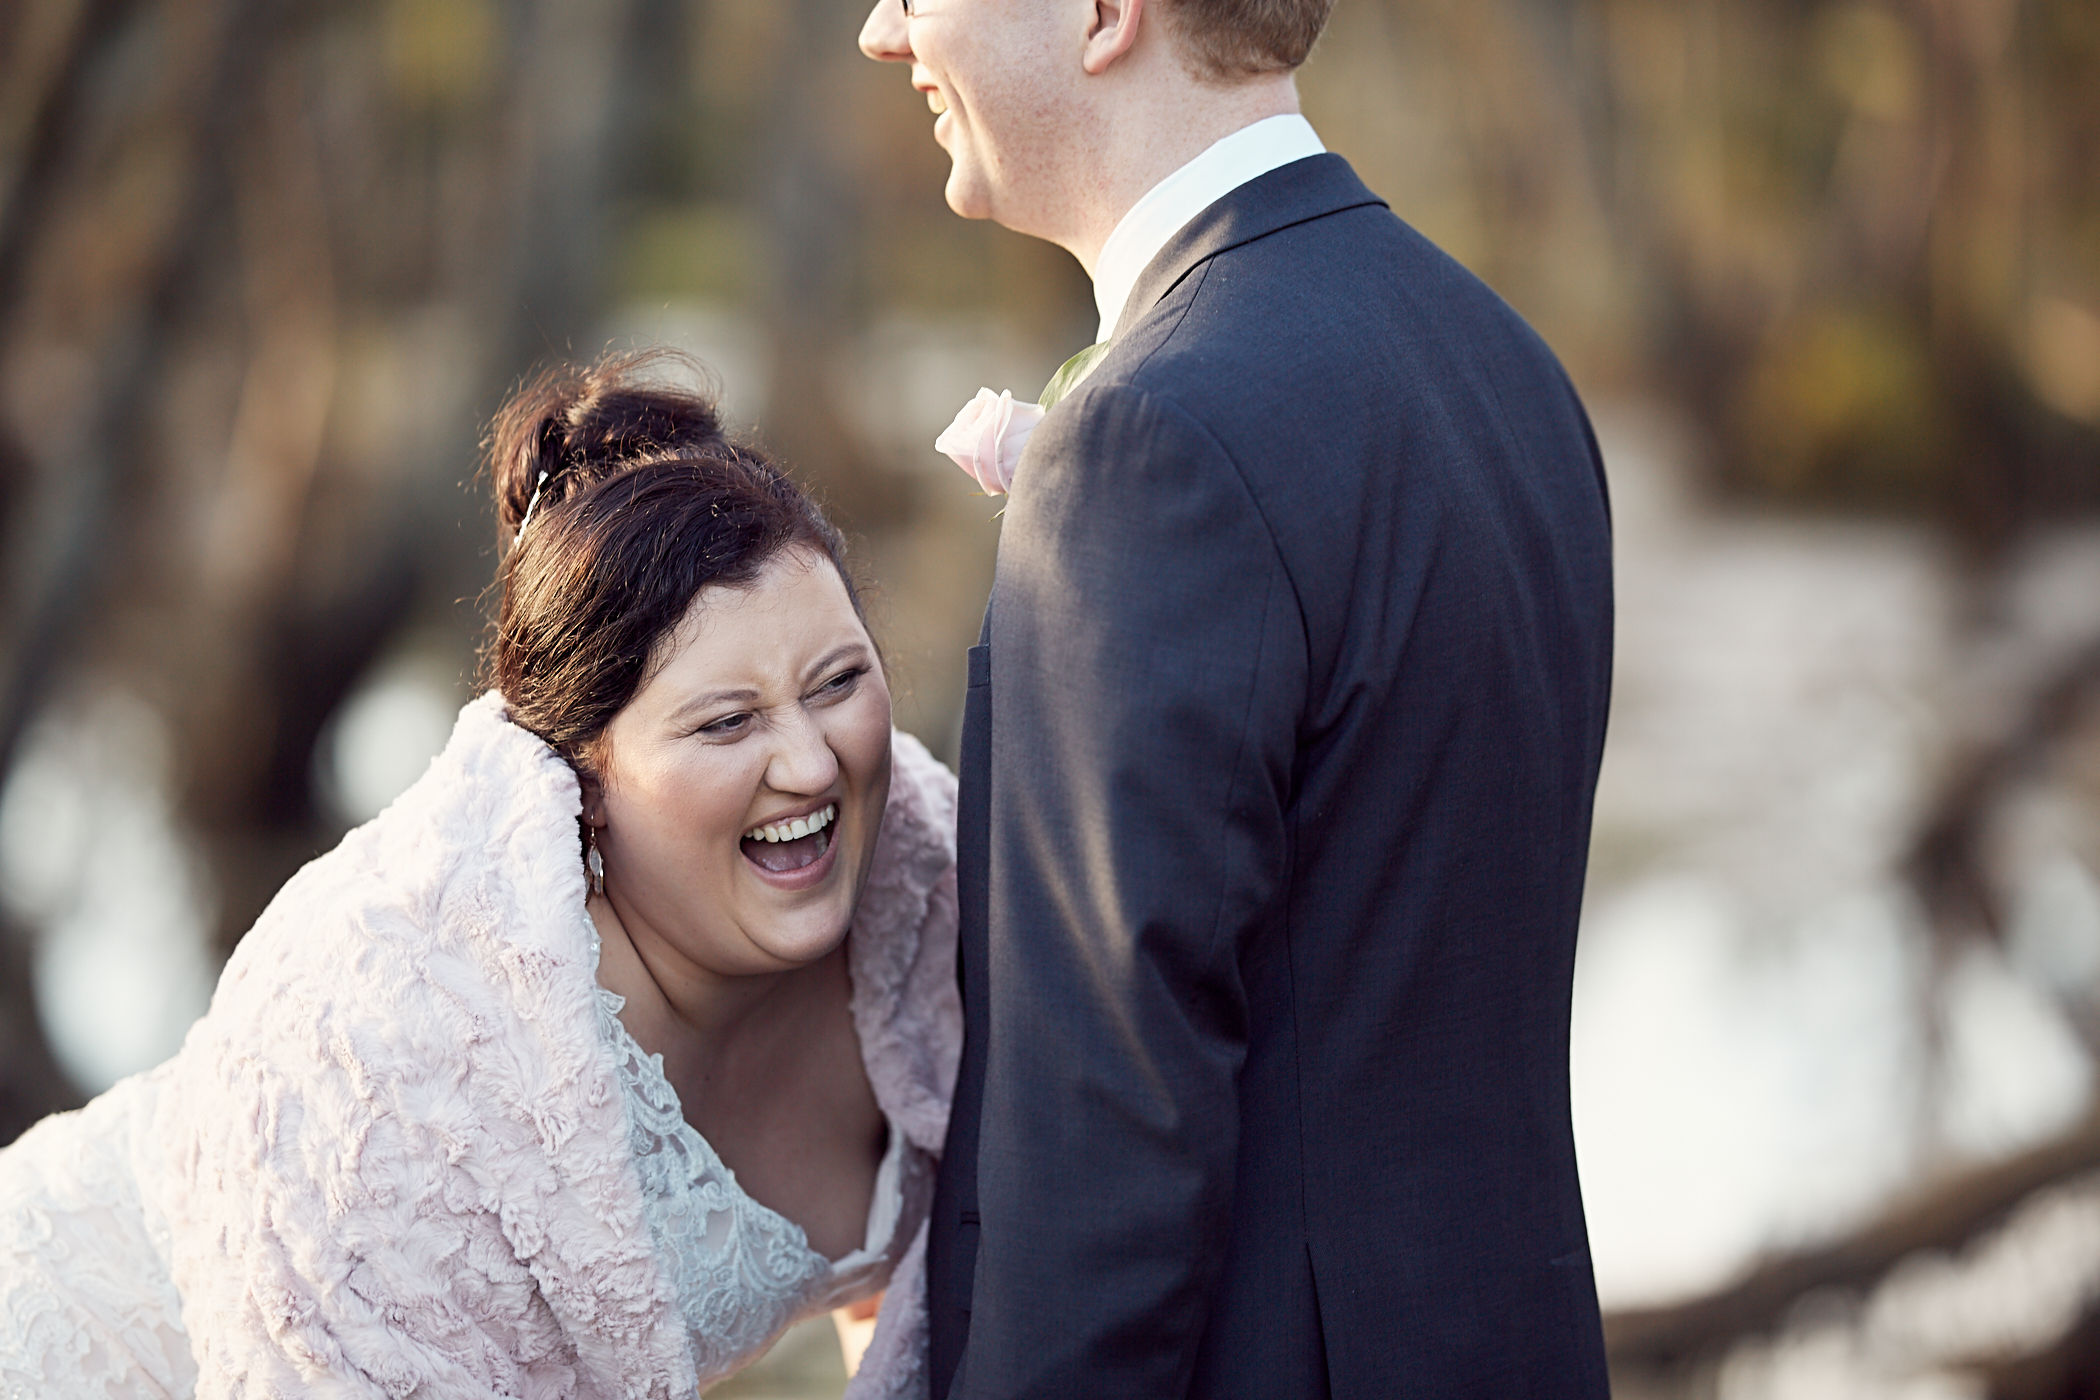 Wedding day laughter